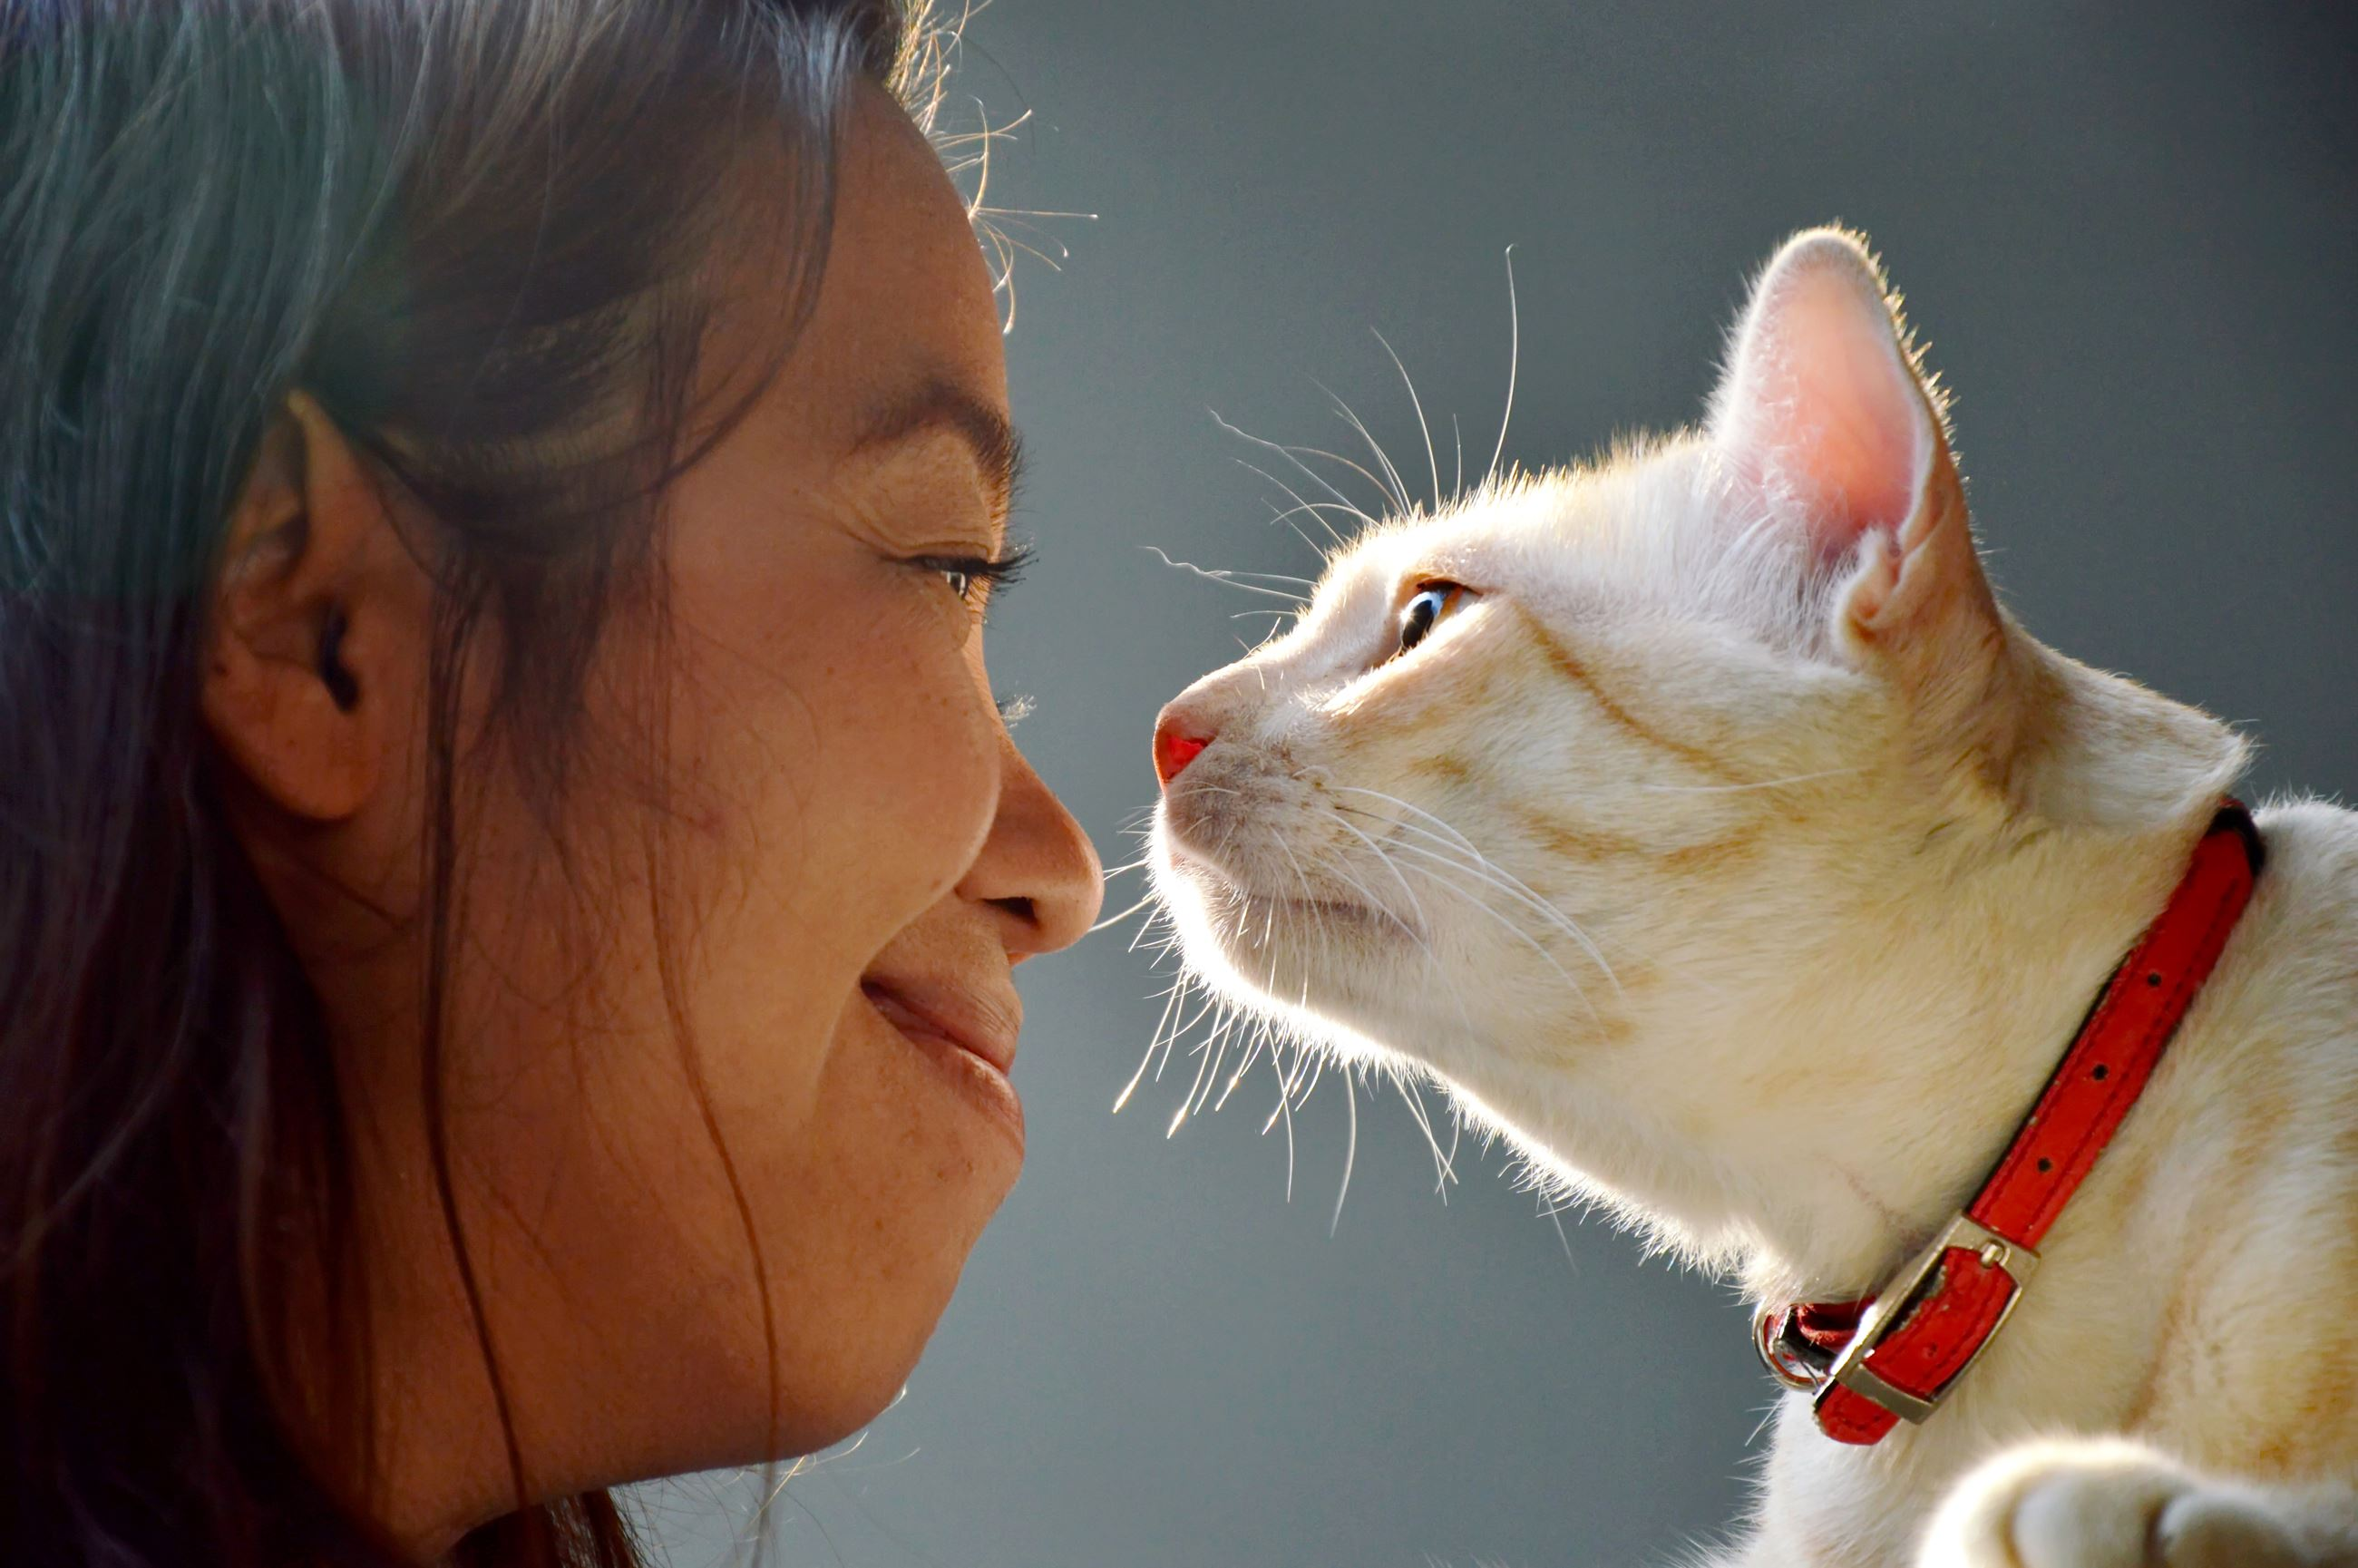 A woman and a cat looking at each other